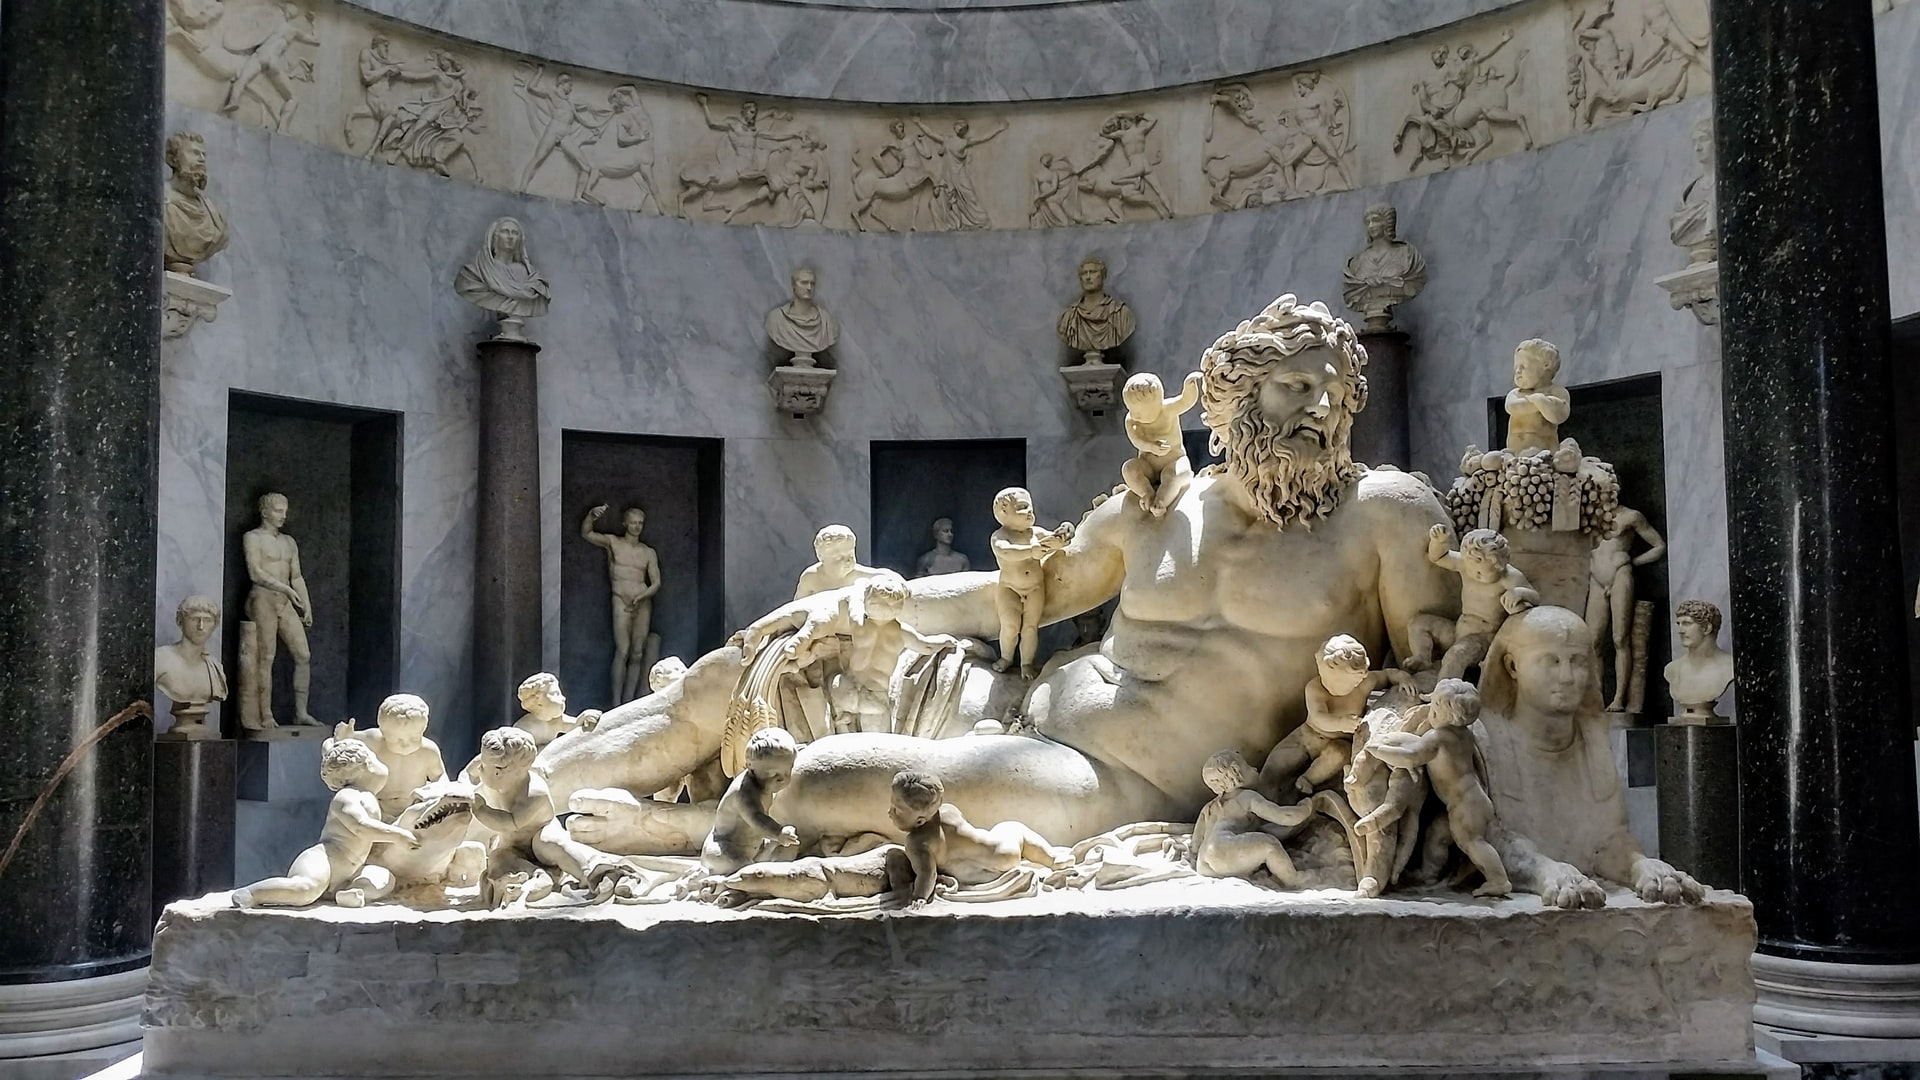 Famous statue of Cronus with the Greek Gods in the Vatican, Rome